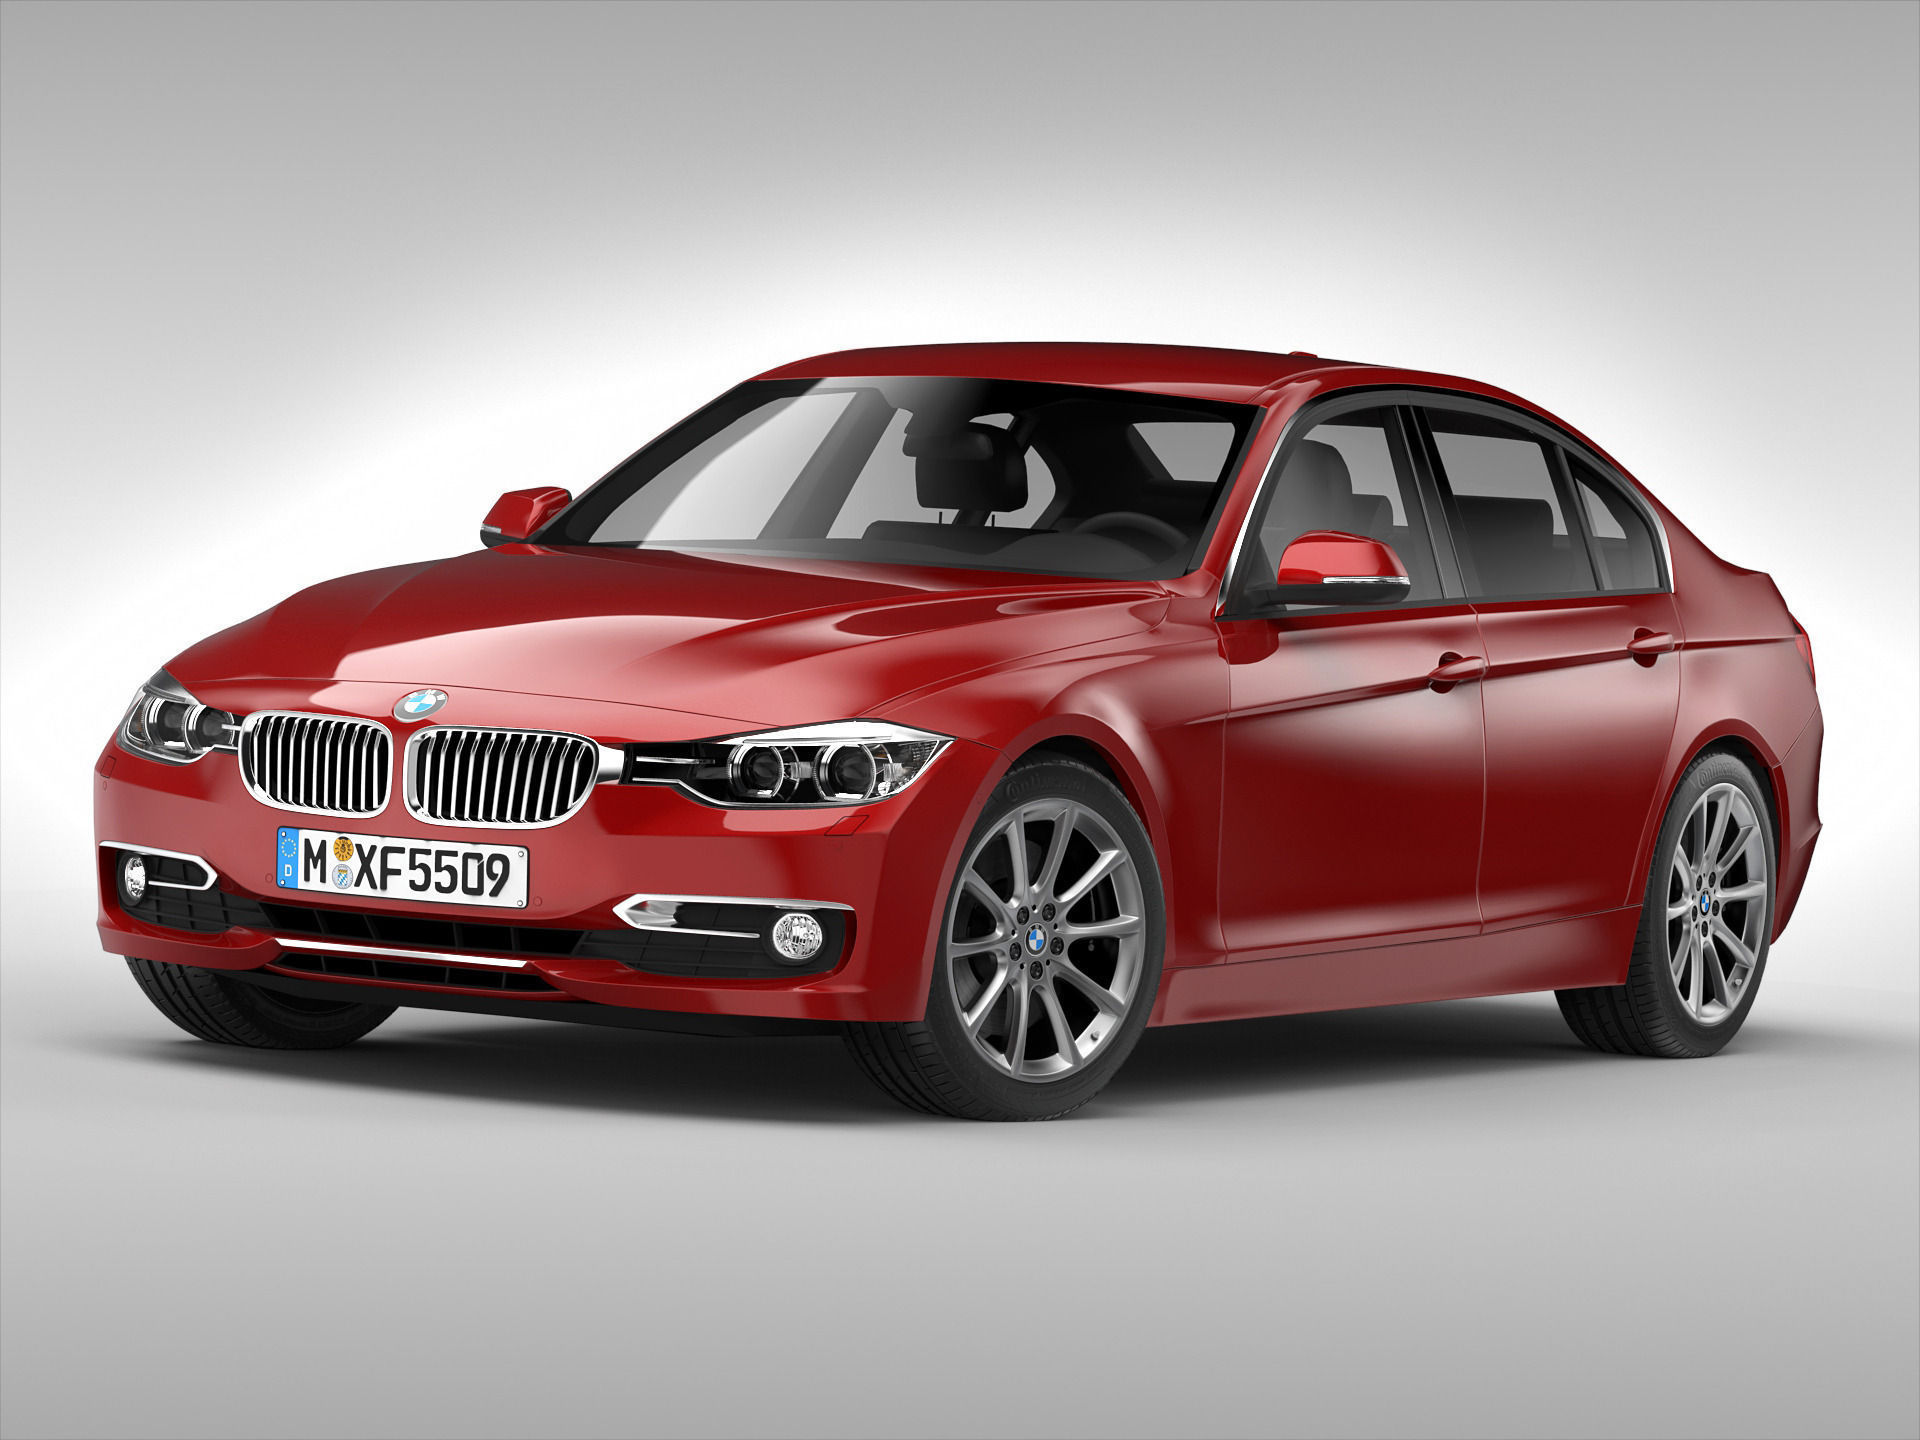 bmw 3 series f30 2013 3d model max obj 3ds fbx. Black Bedroom Furniture Sets. Home Design Ideas